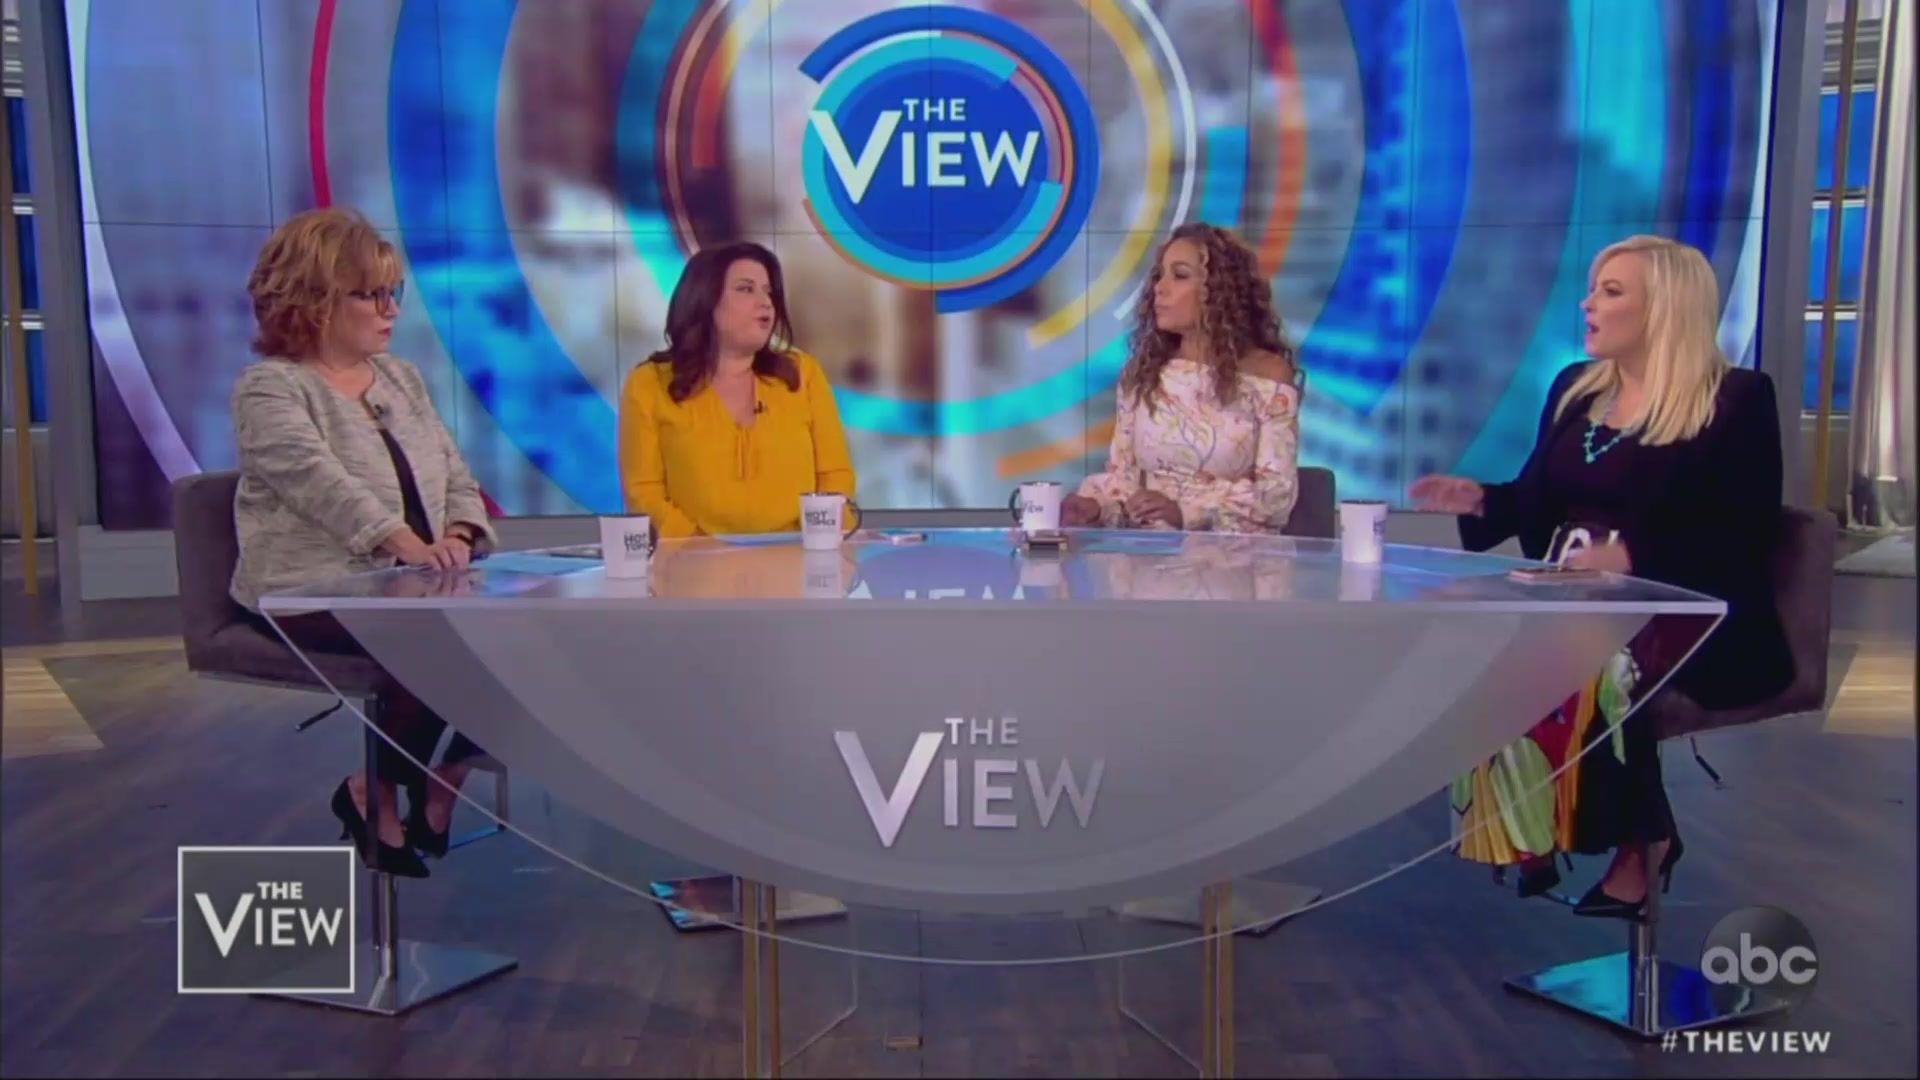 Meghan McCain and Joy Behar Duke It Out Over Republicans' Refusal to Call Out Trump's Racism